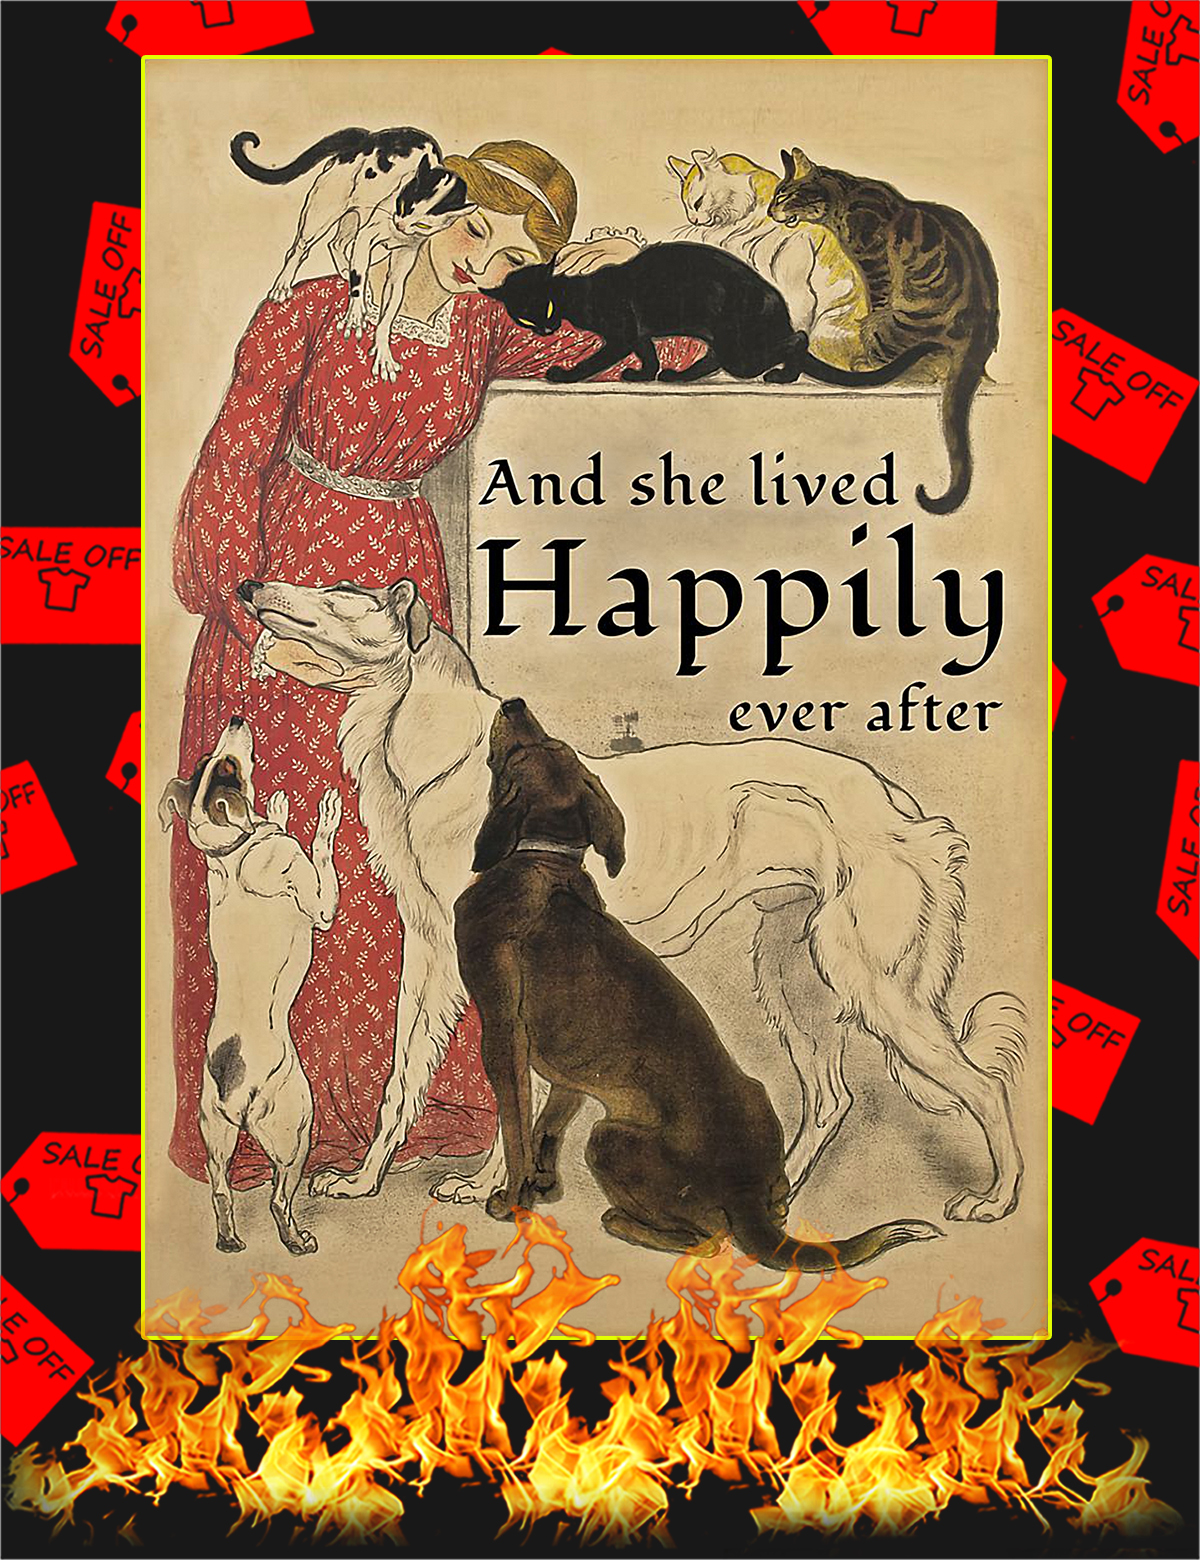 Dog and cat And she lived happily ever after poster - A4